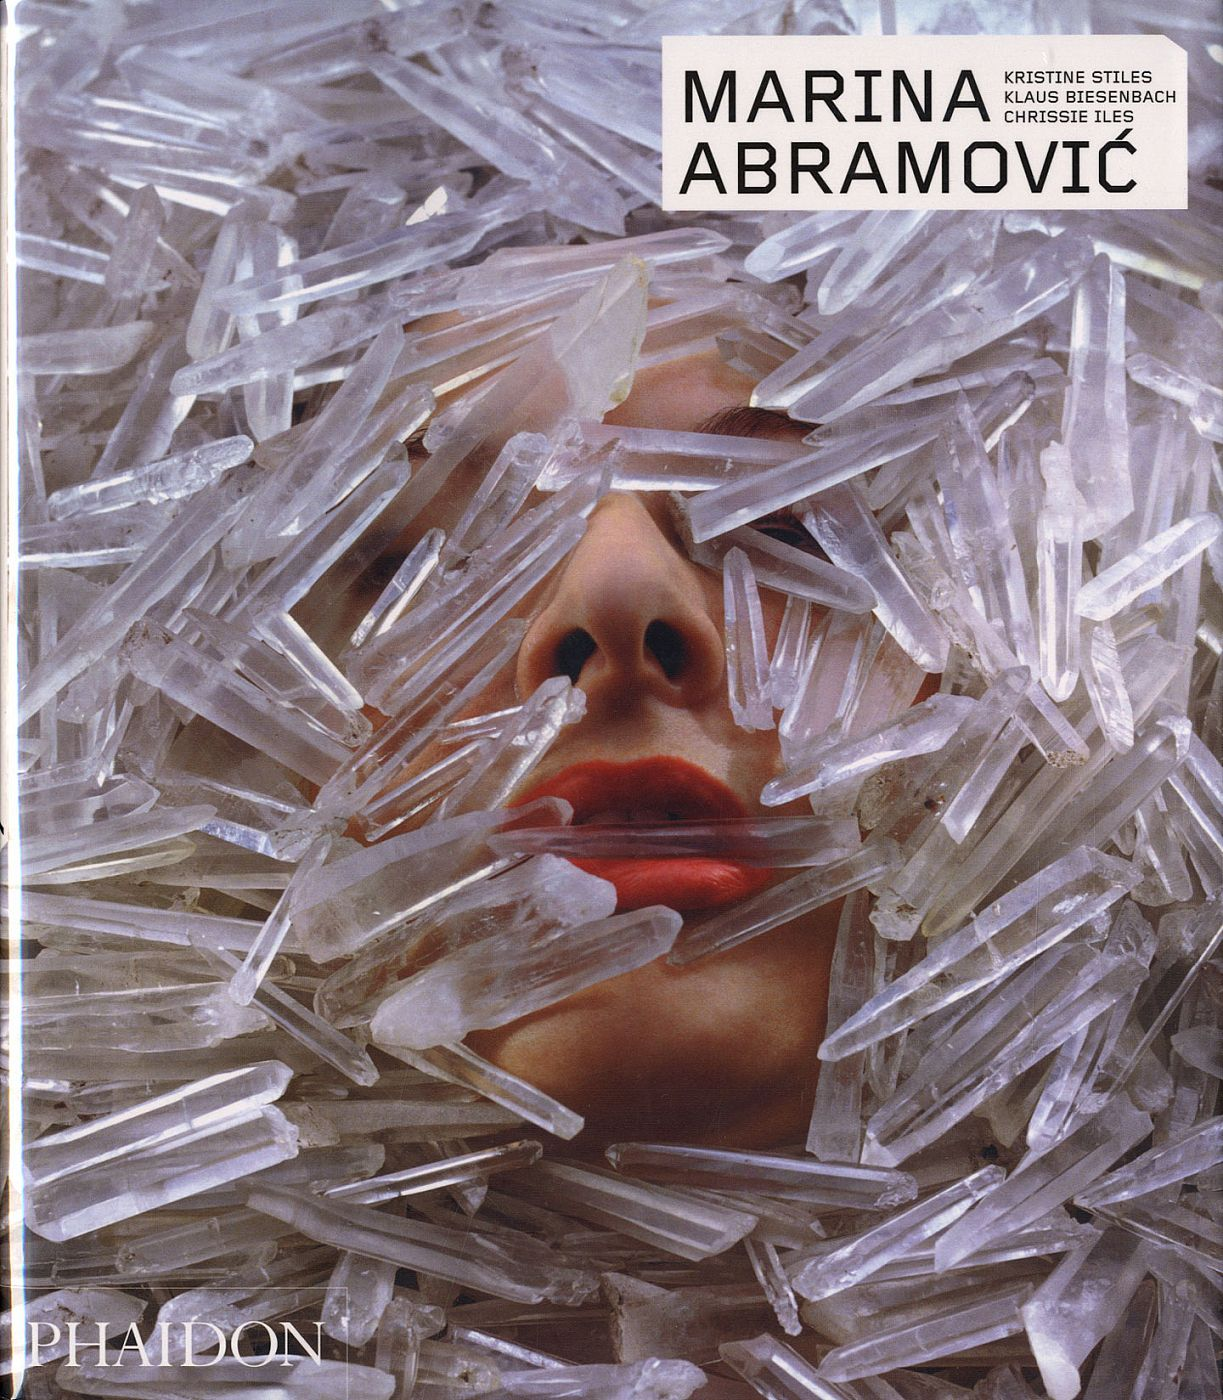 Marina Abramovic (Phaidon Contemporary Artists Series) [SIGNED]